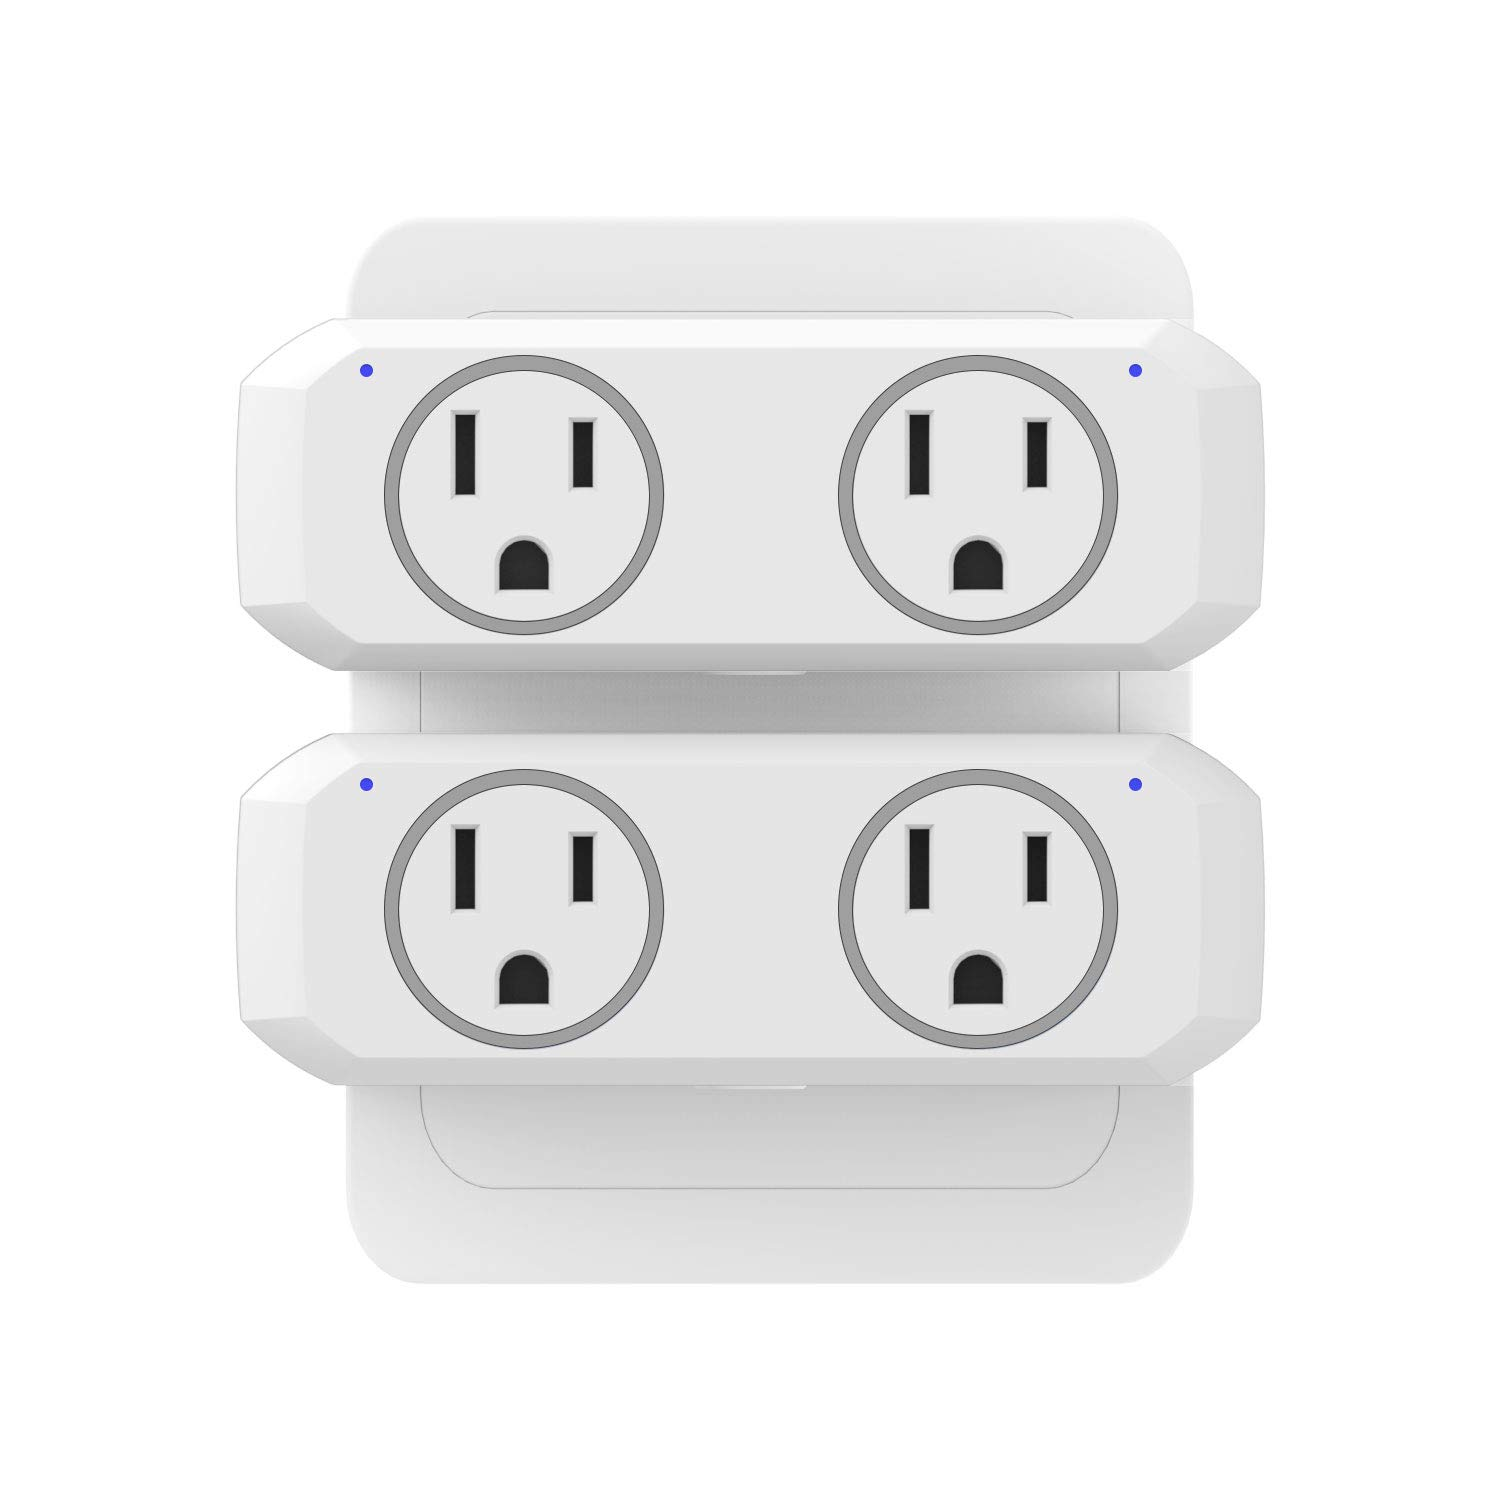 WiFi Smart Plug Dual Outlet 2 Pack - NTONPOWER WiFi Mini Socket Work with Alexa, Google Home & IFTTT, Remote Control Individually or in Group, Schedule and Timer Function, No Hub Required